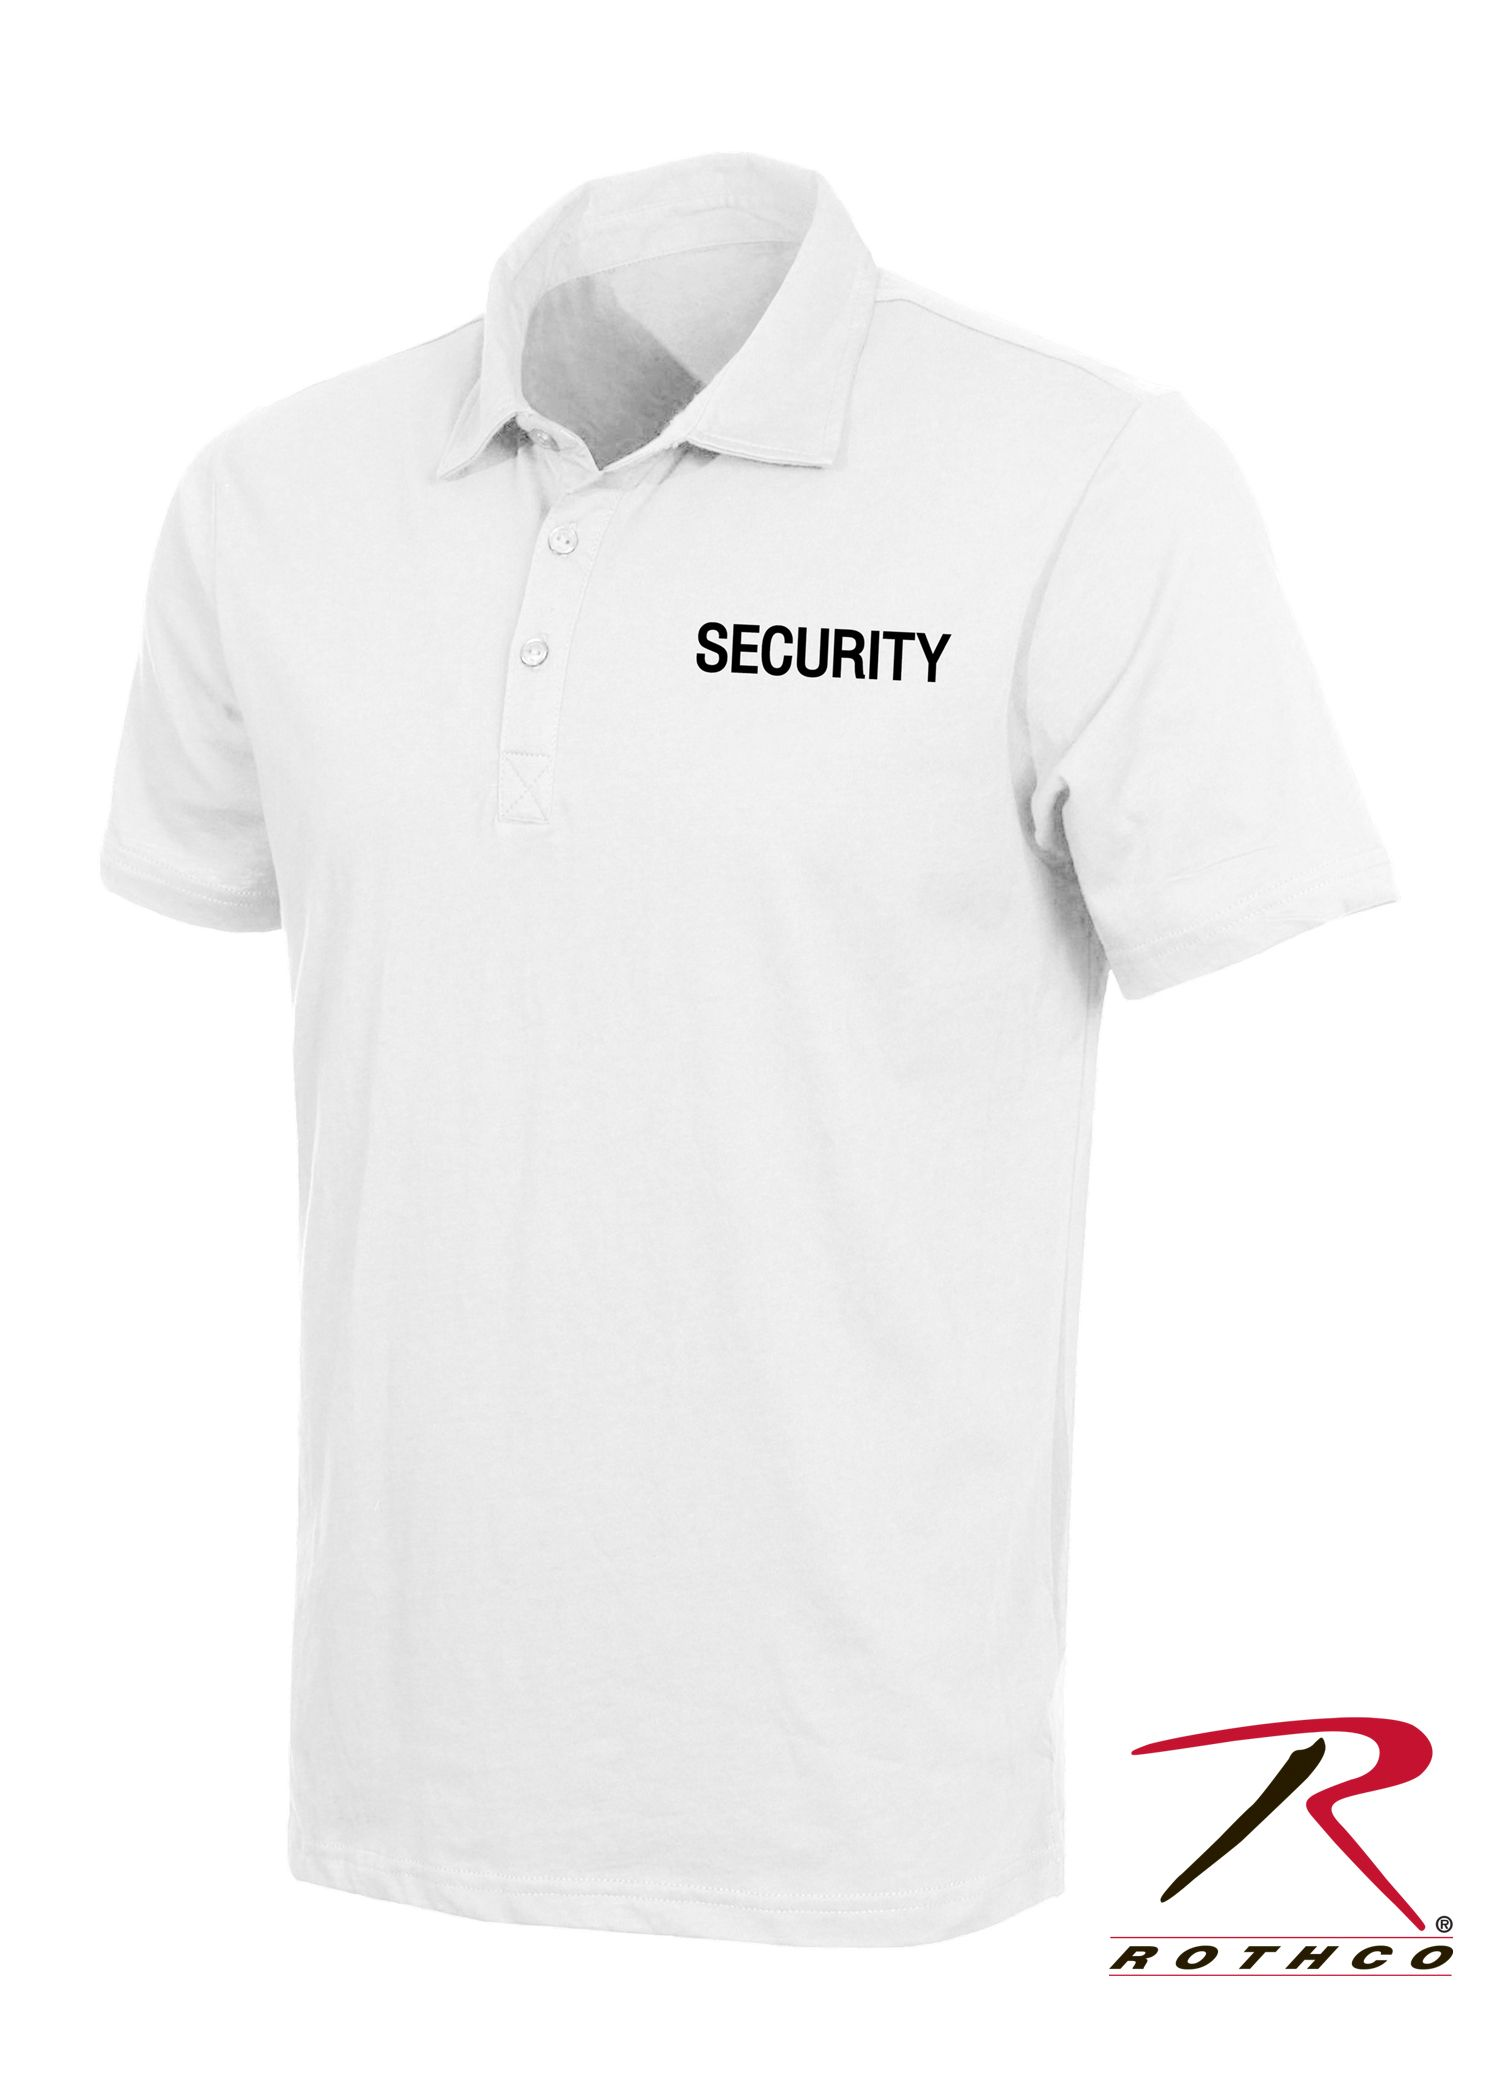 Buy Rothco Law Enforcement Printed Polo Shirts Rothco Online At